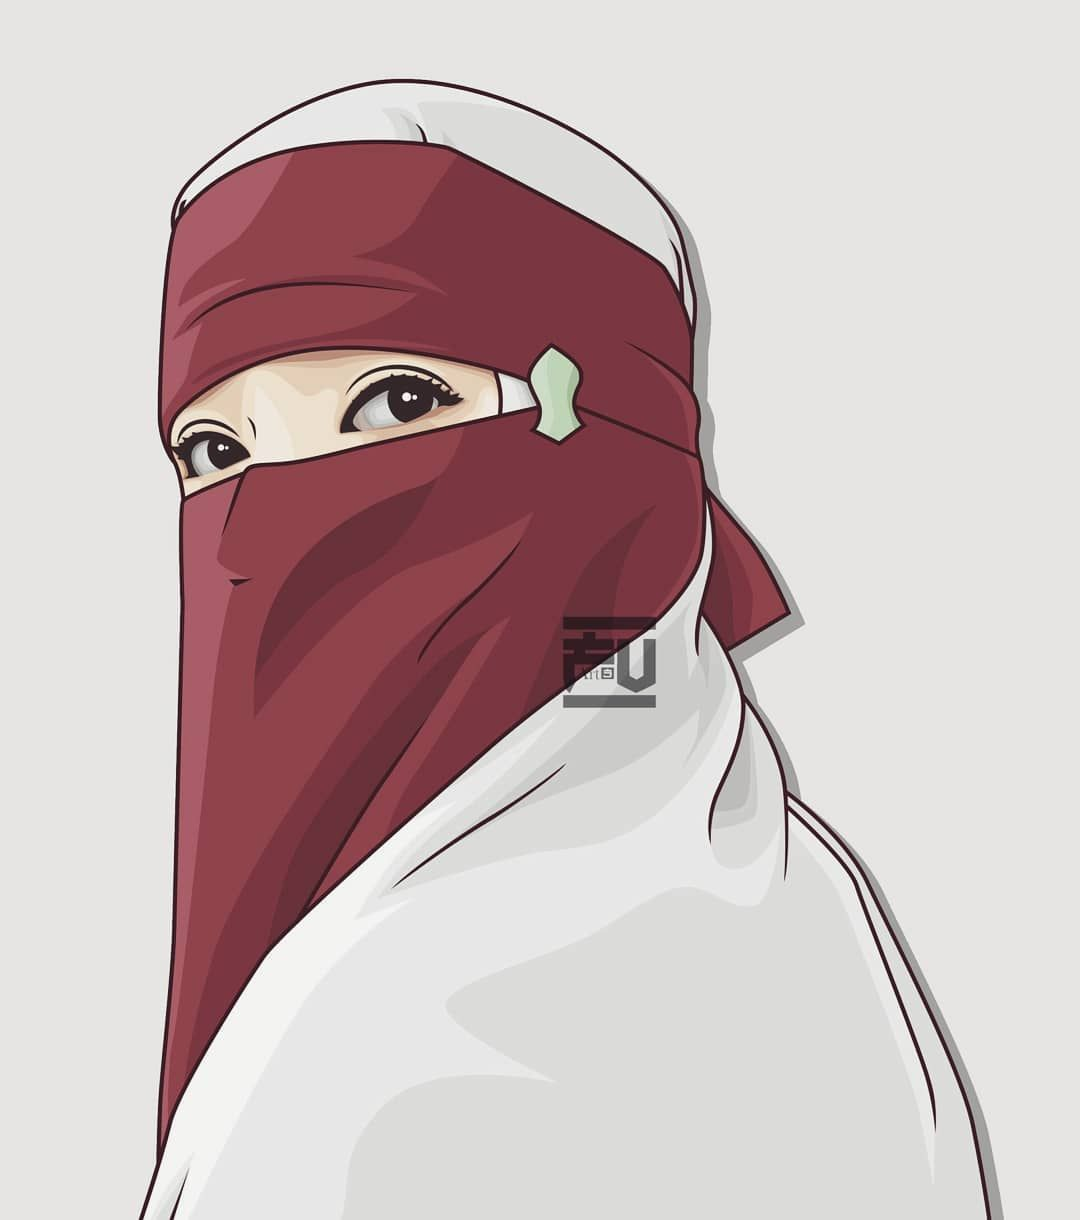 Muslim Girl Cartoon Wallpapers Top Free Muslim Girl Cartoon